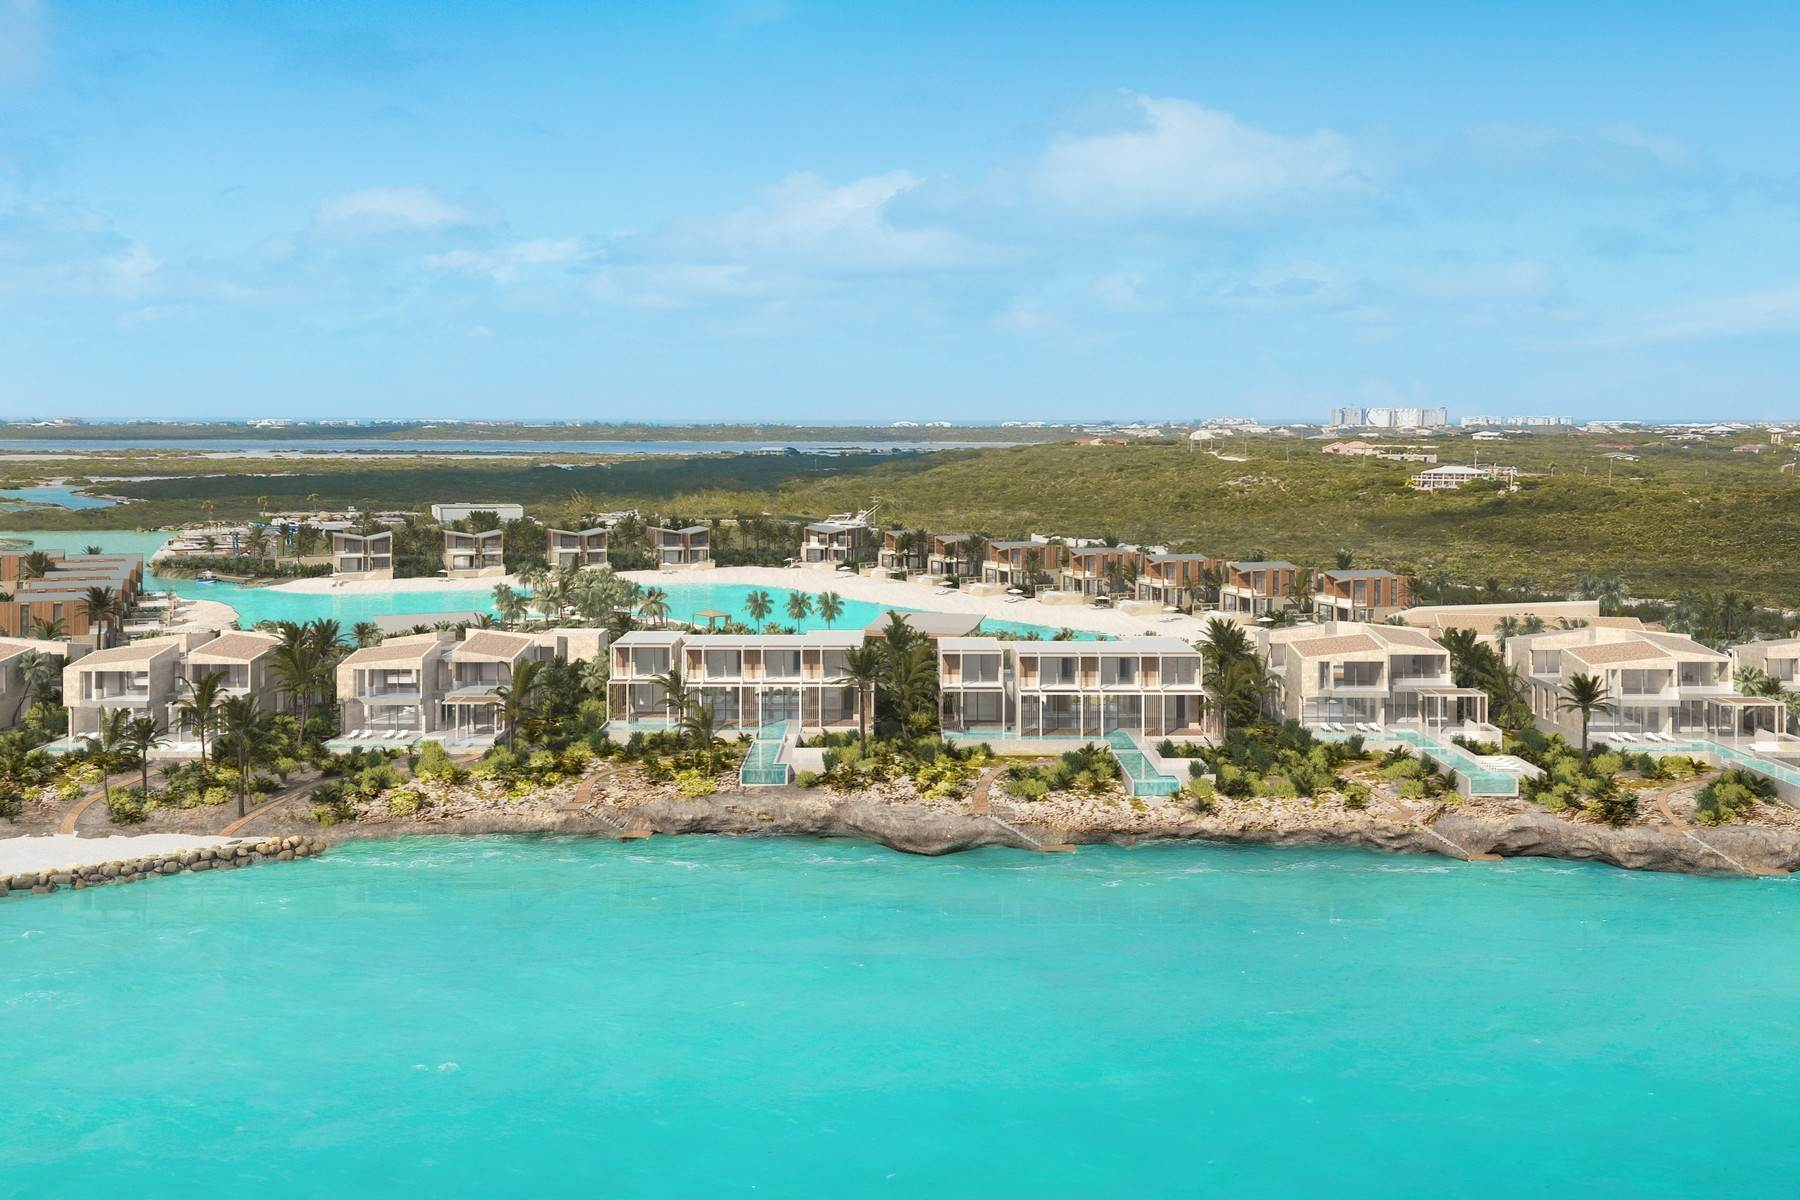 Single Family Homes for Sale at SOUTH BANK - THE OCEAN ESTATE I - BANKS VILLA 7 South Bank, Long Bay, Providenciales Turks And Caicos Islands